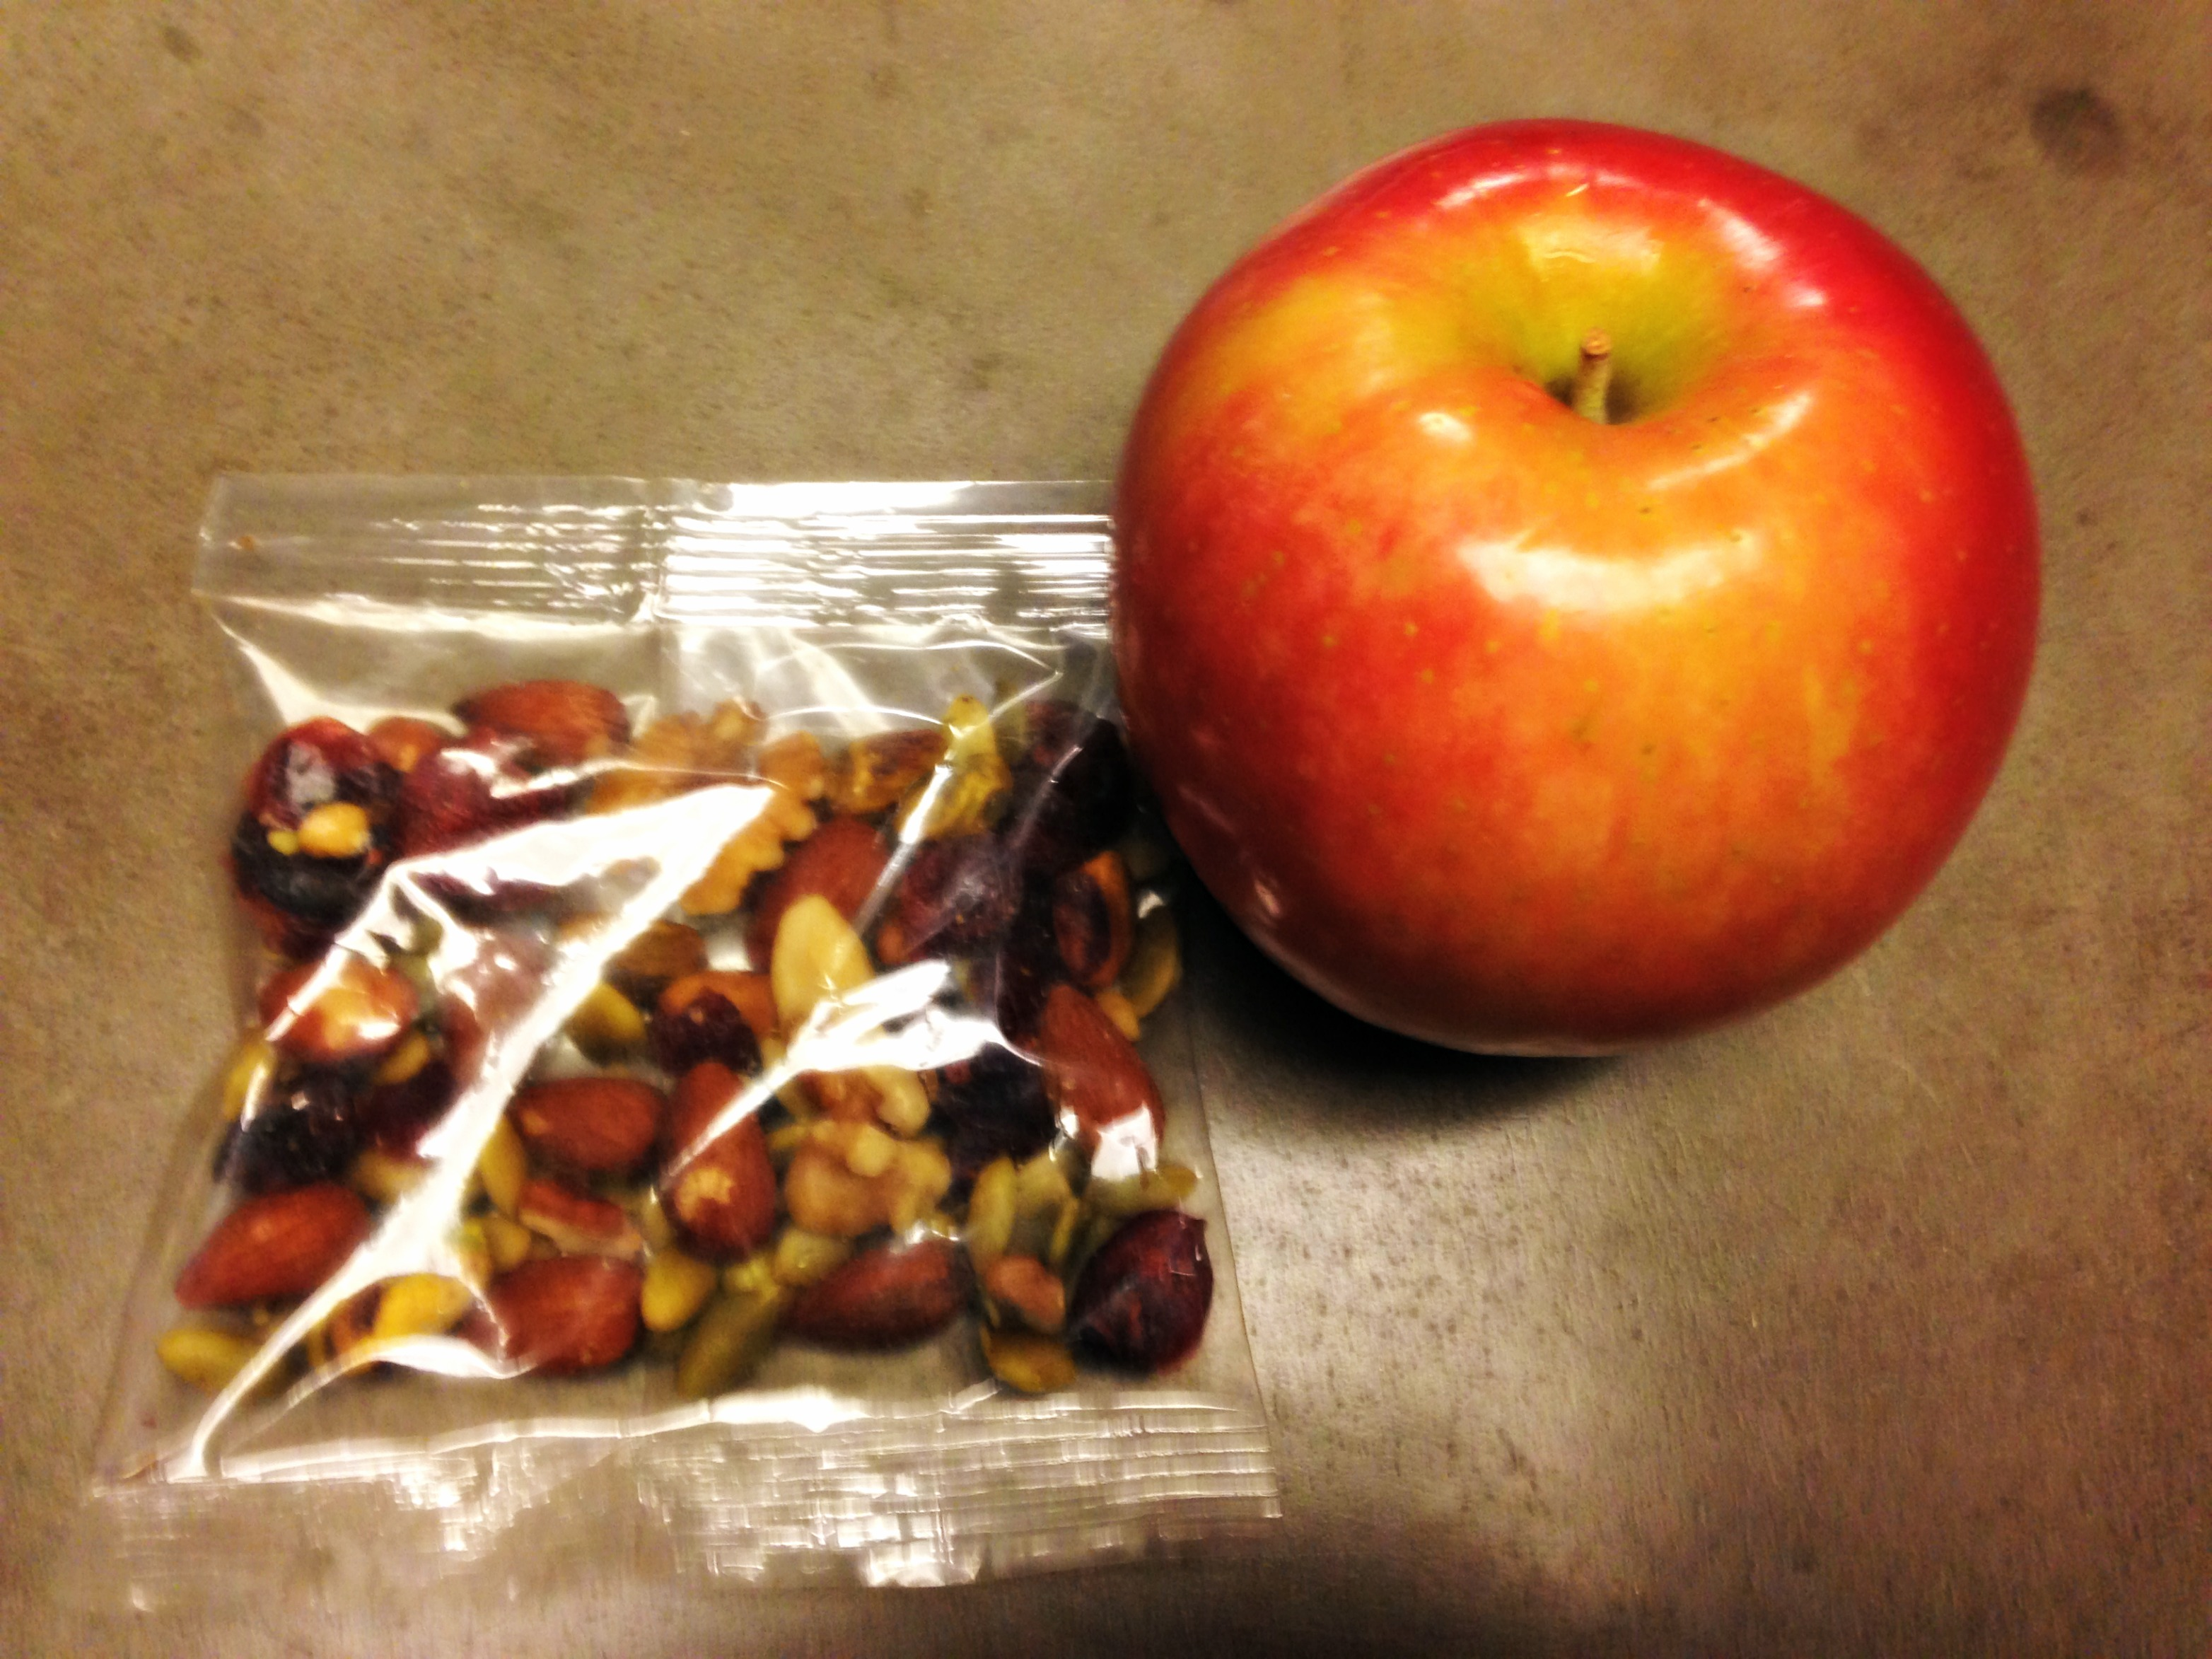 Afternoon apple and trail mix